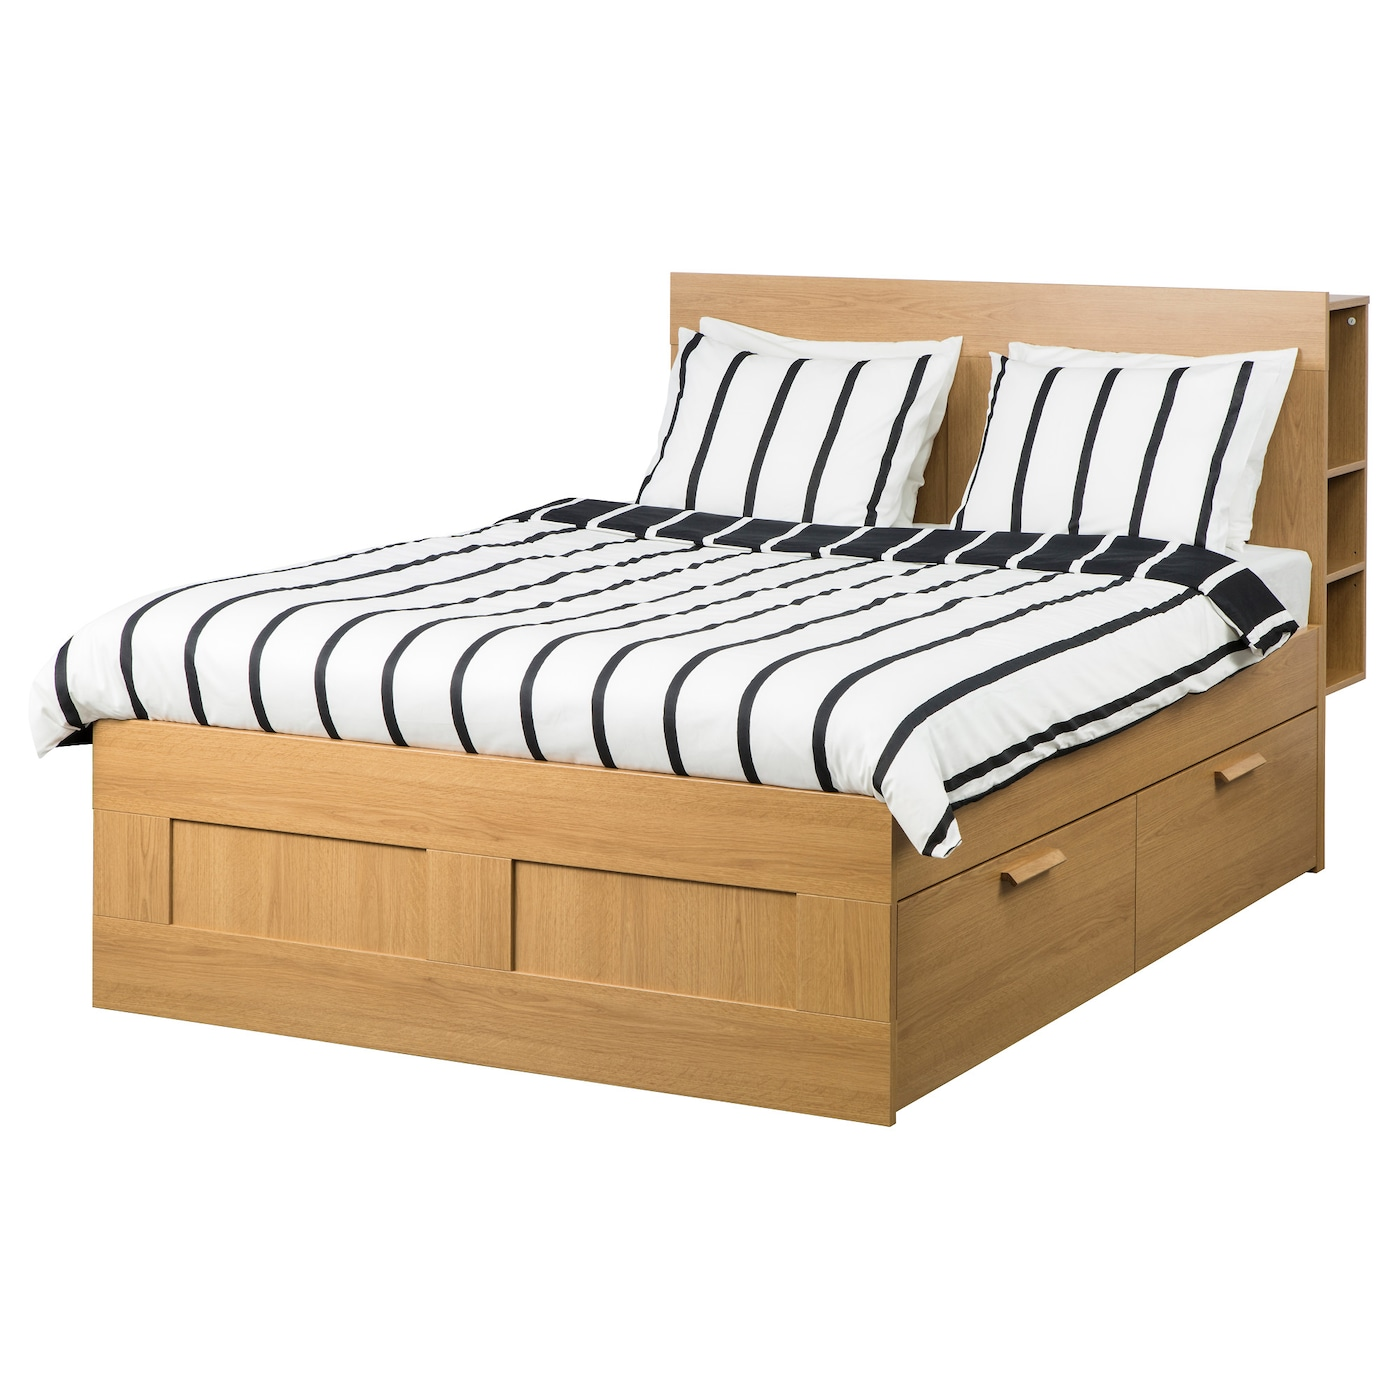 Bed frame with storage - Ikea Brimnes Bed Frame W Storage And Headboard